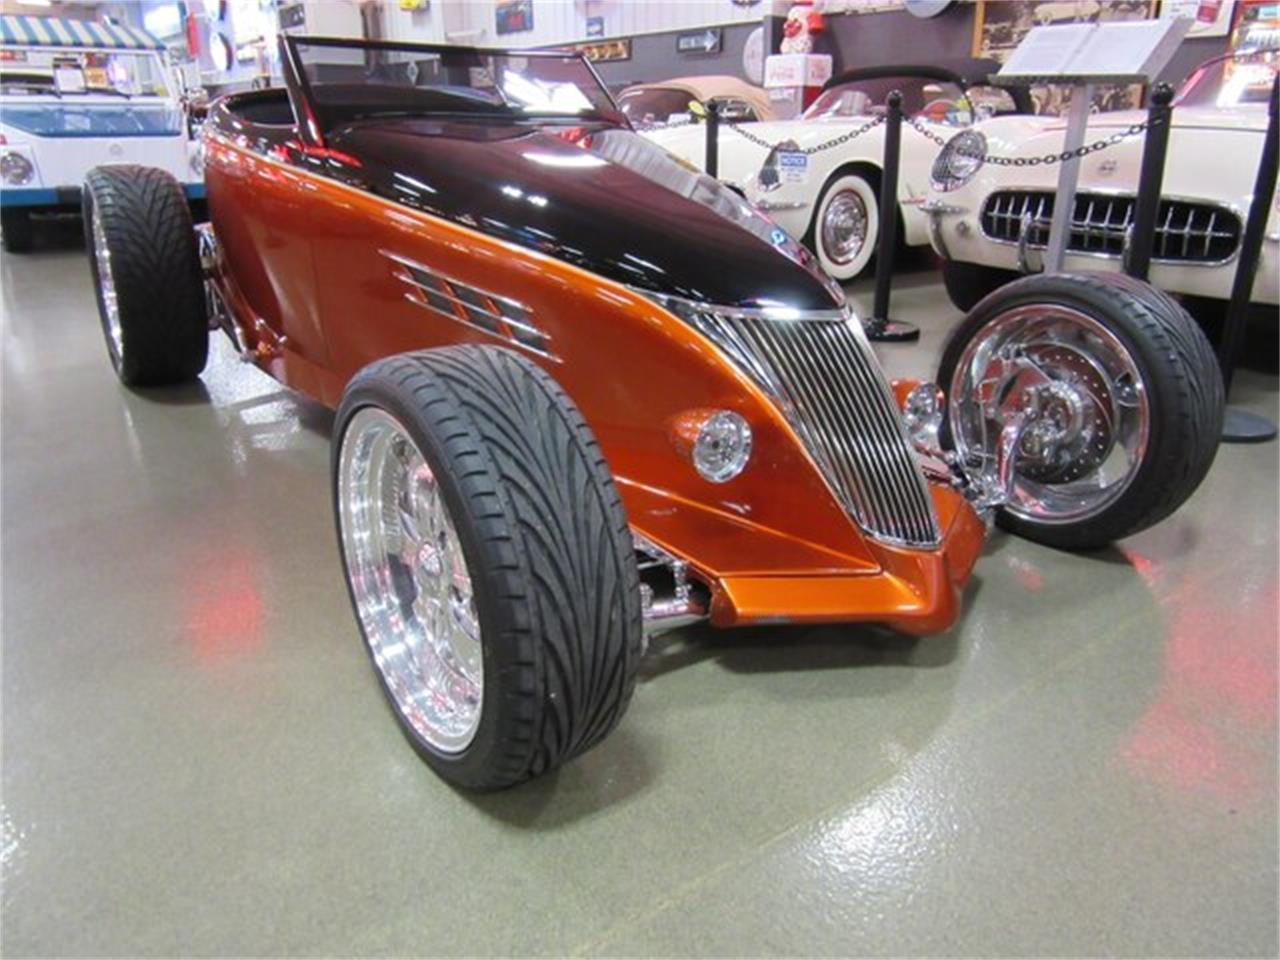 2006 Custom Roadster for sale in Greenwood, IN – photo 4